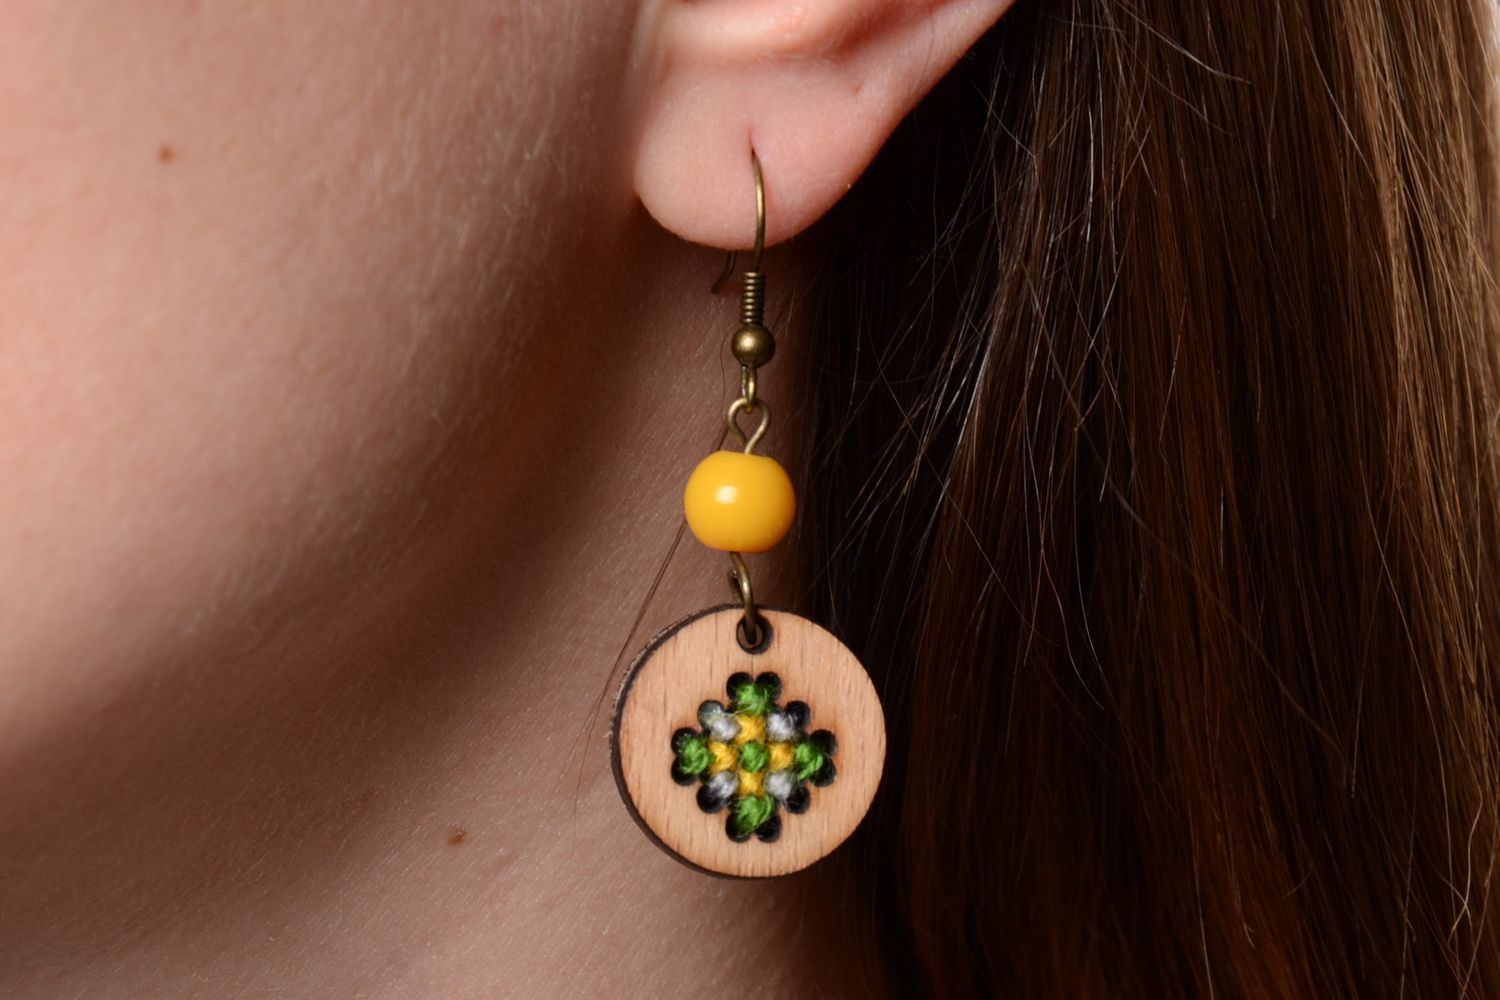 Handmade plywood jewellery round earrings and pendant with embroidery in ethnic style photo 5